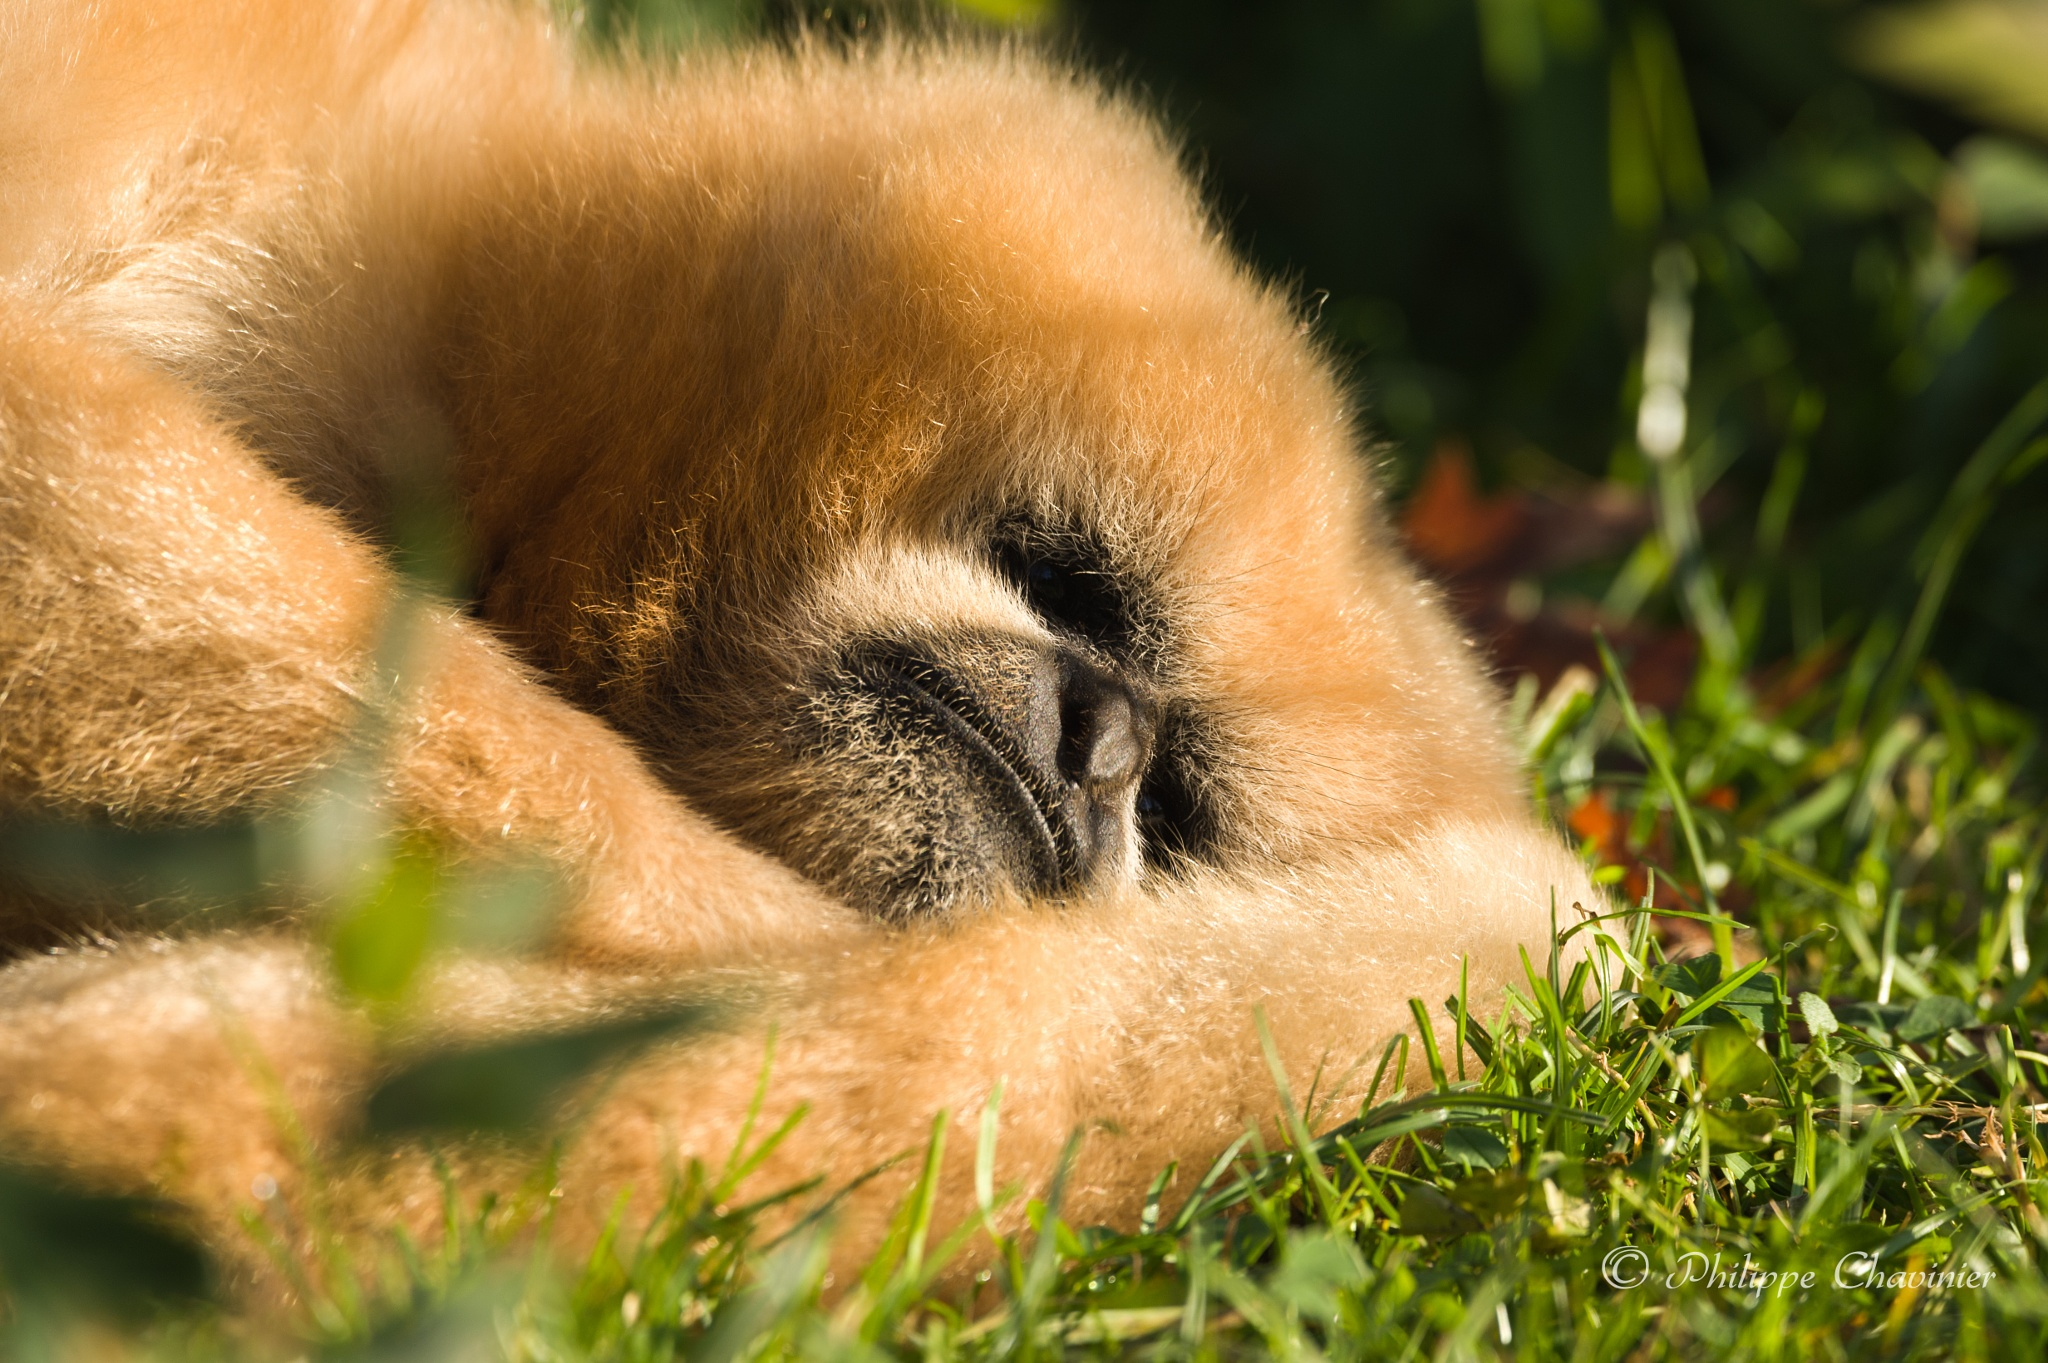 White cheeks gibbon having a rest and warming itself under winter sun by Philippe Chavinier